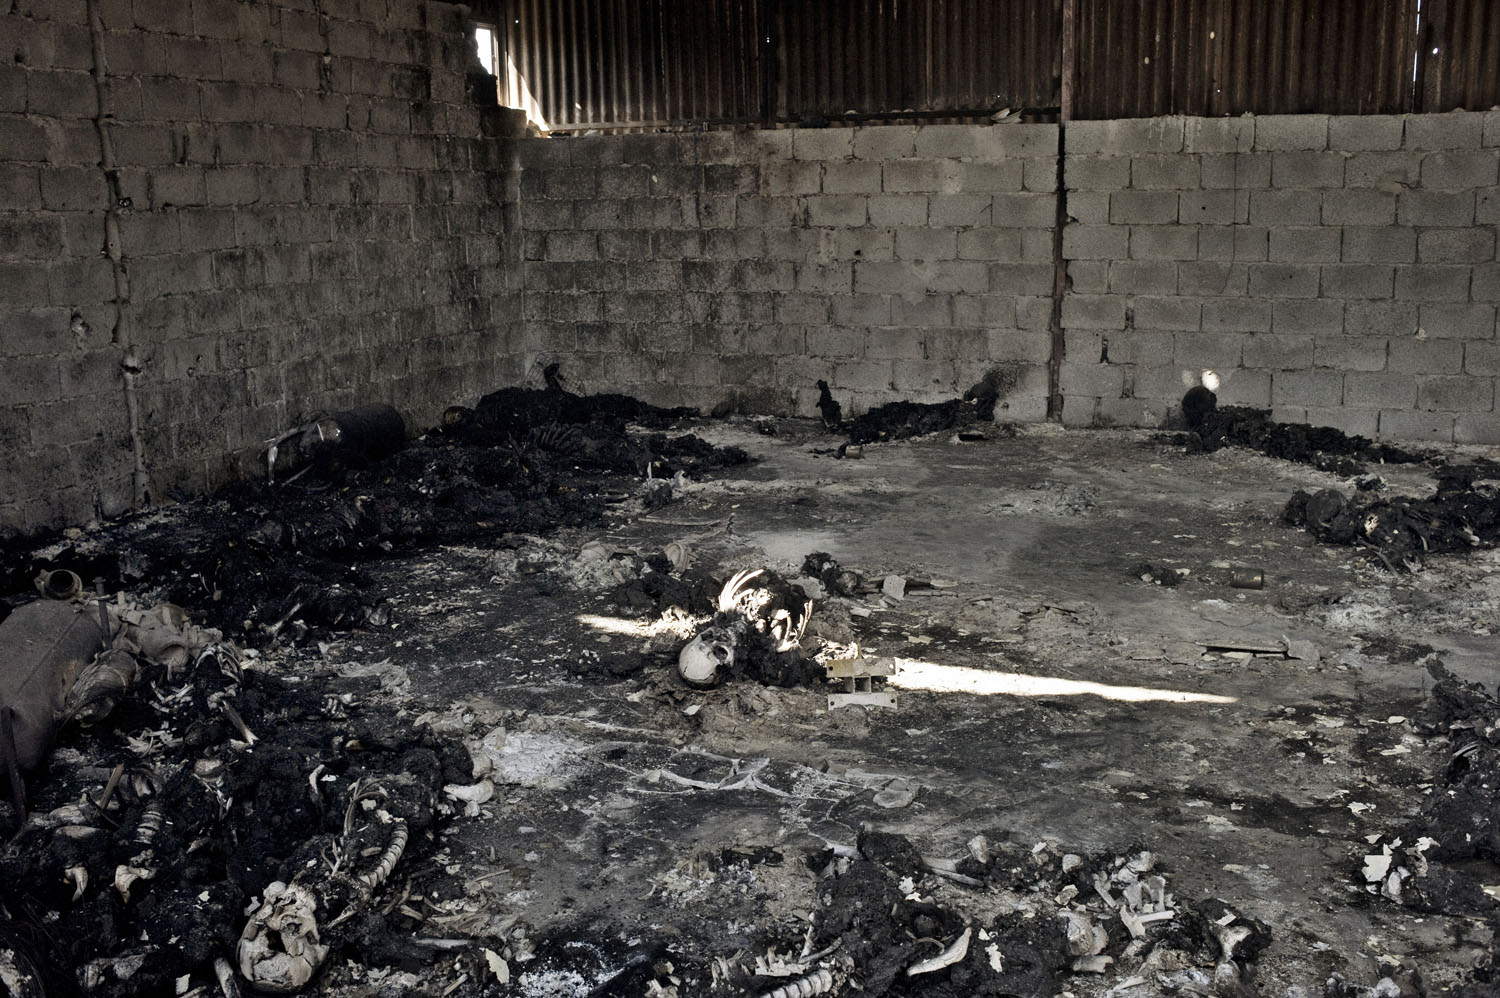 The charred remains of more than 50 people, victims of an alleged massacre by Gaddafi loyalists, lie in a warehouse on a military base in Tripoli, August 27, 2011.